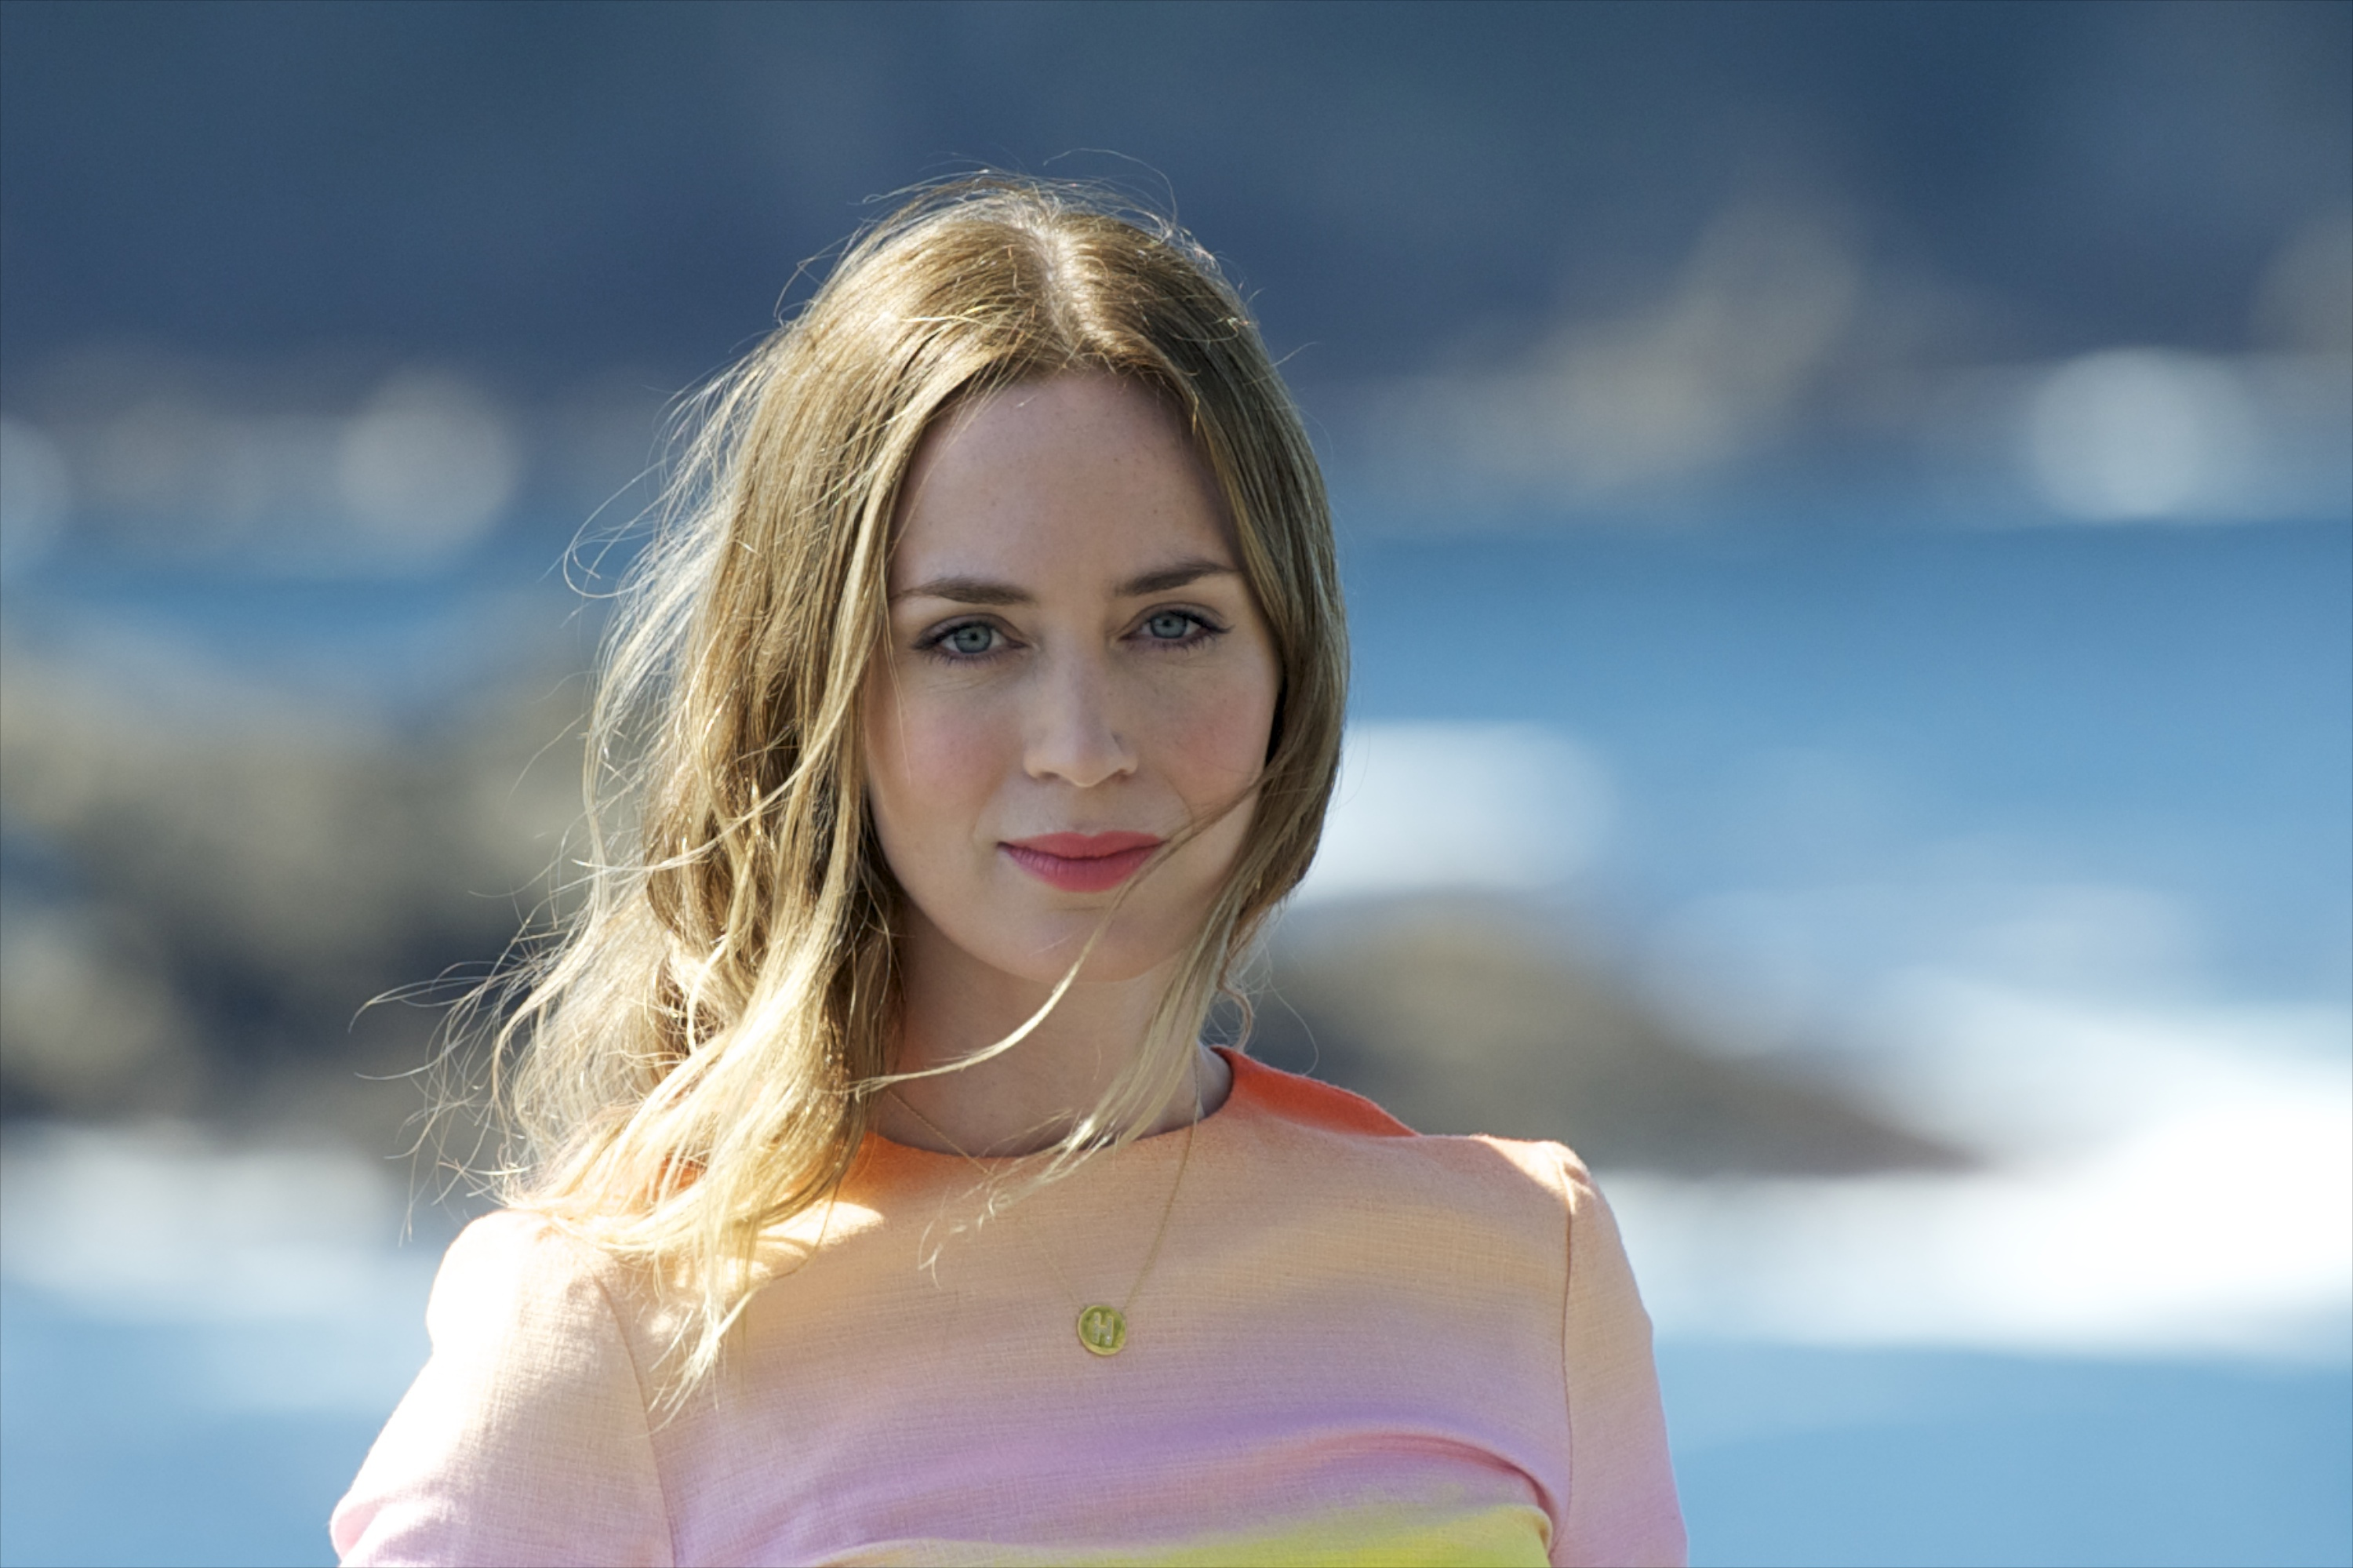 Emily Blunt attends 'Sicario' photocall during 63rd San Sebastian Film Festival on September 19, 2015 in San Sebastian, Spain.  (Photo by Juan Naharro Gimenez/WireImage)